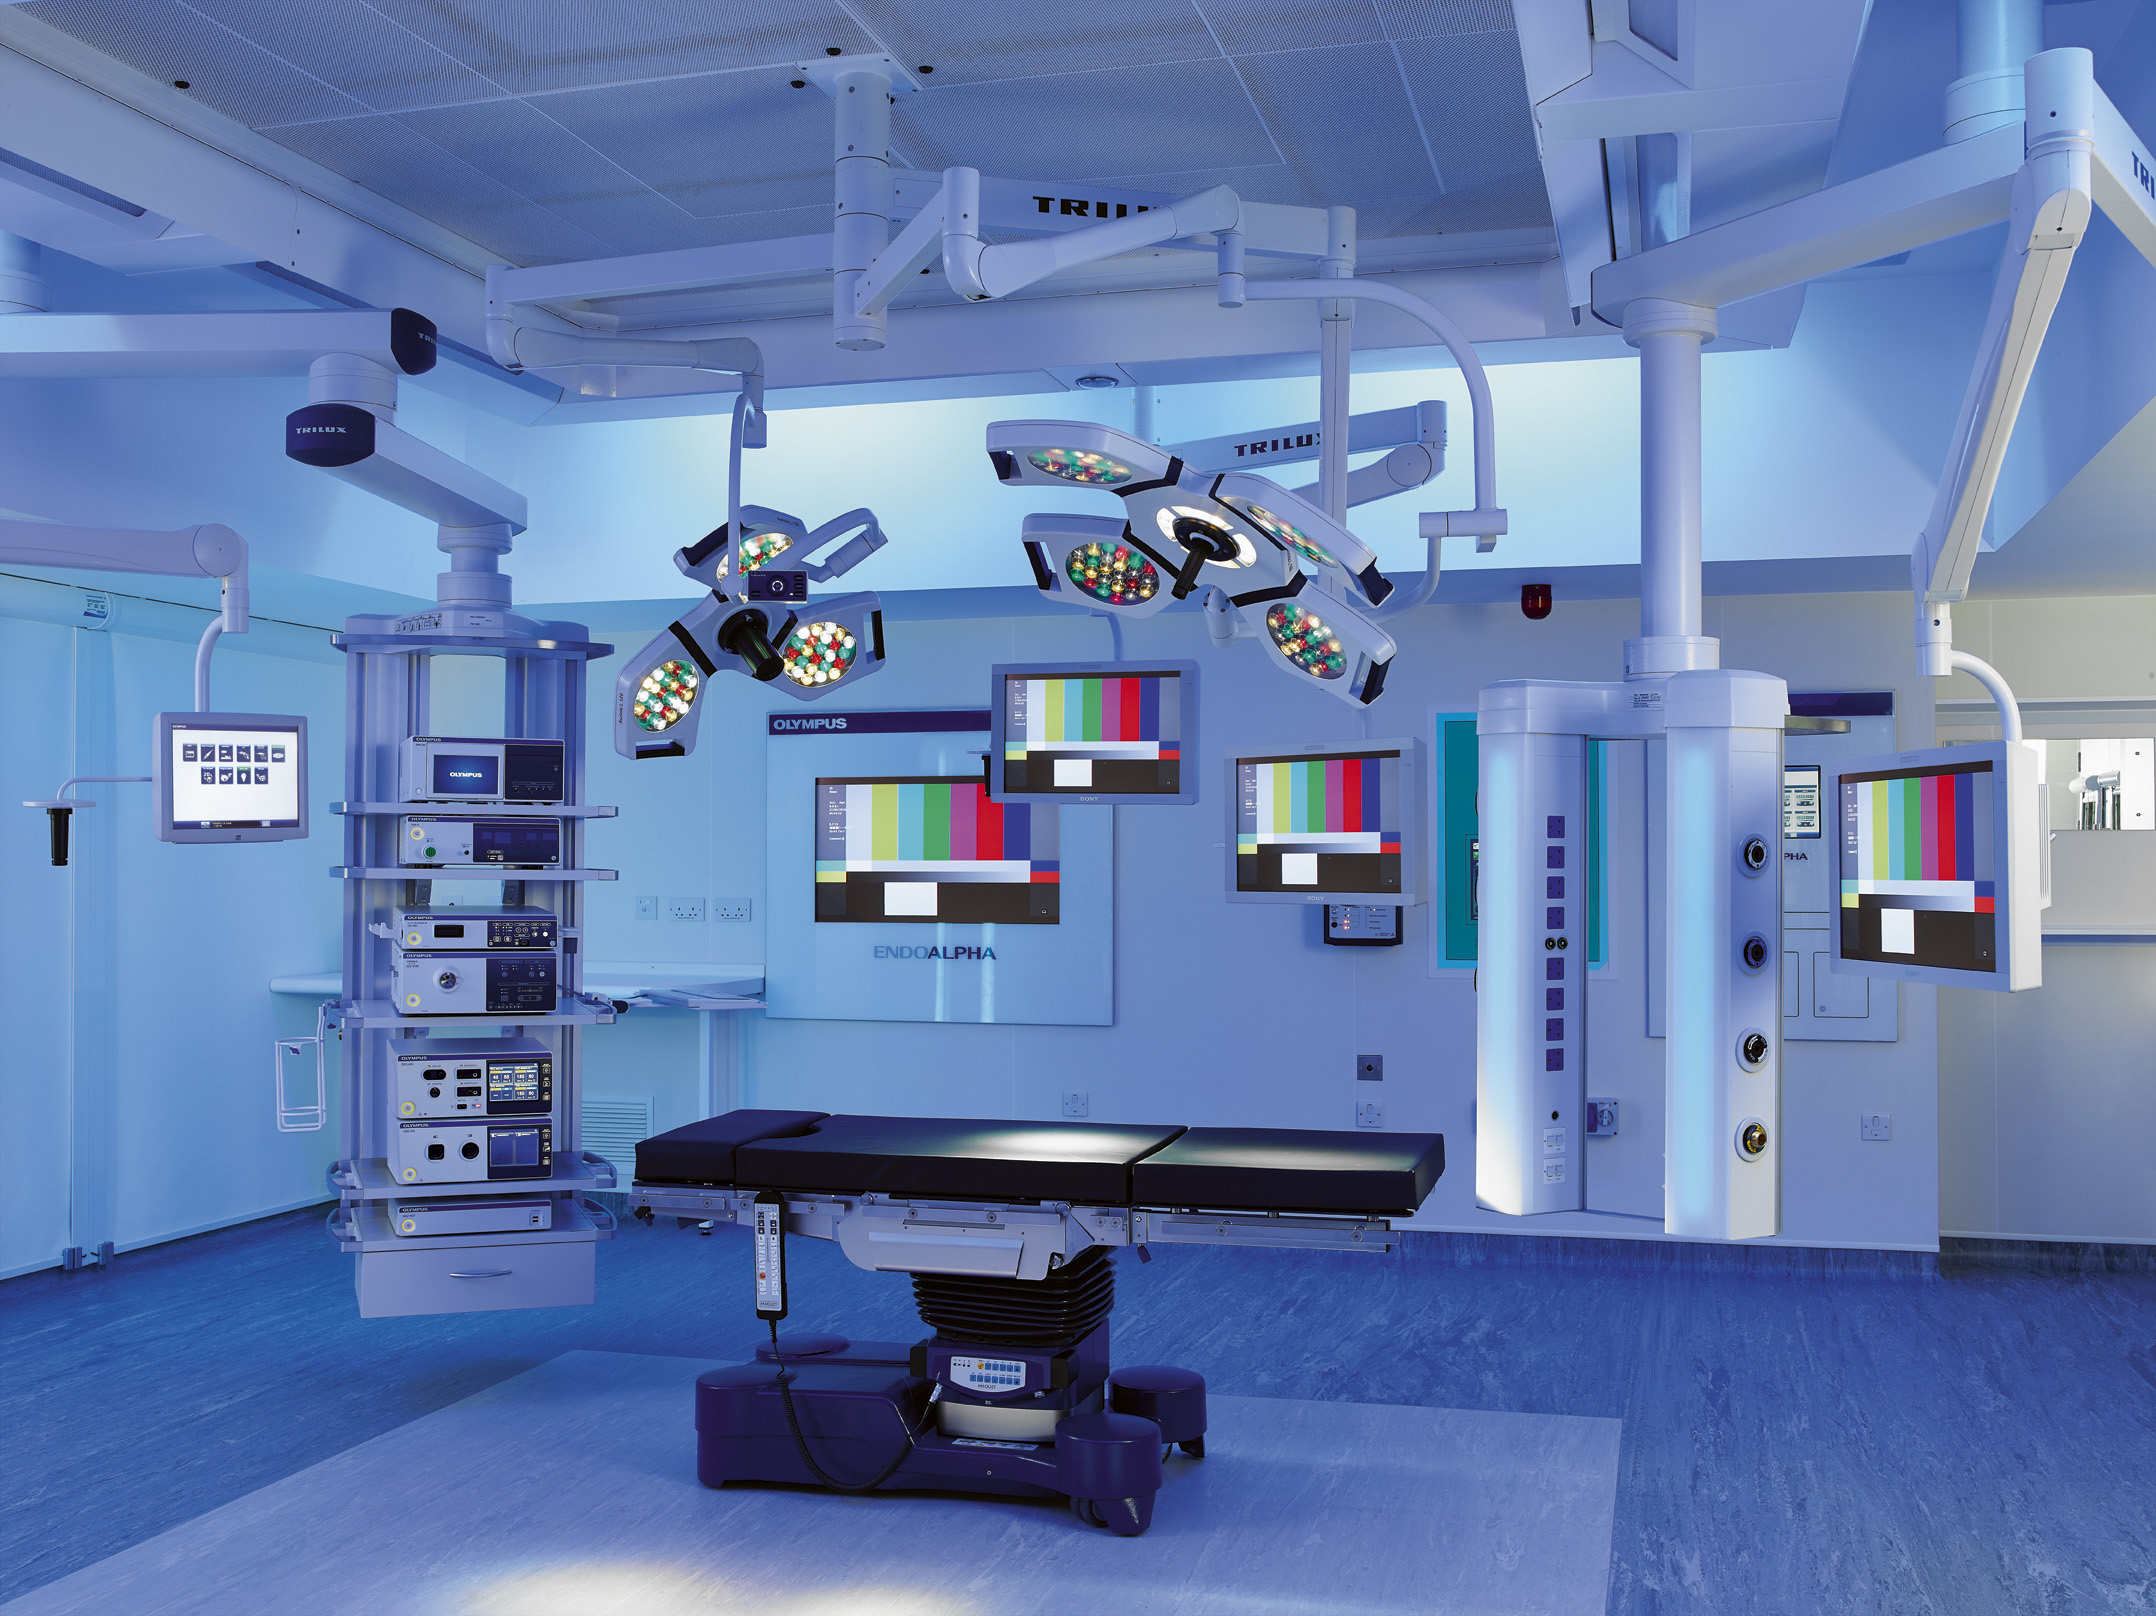 Olympus Selected As Innovation Partner And To Equip 35 Ors